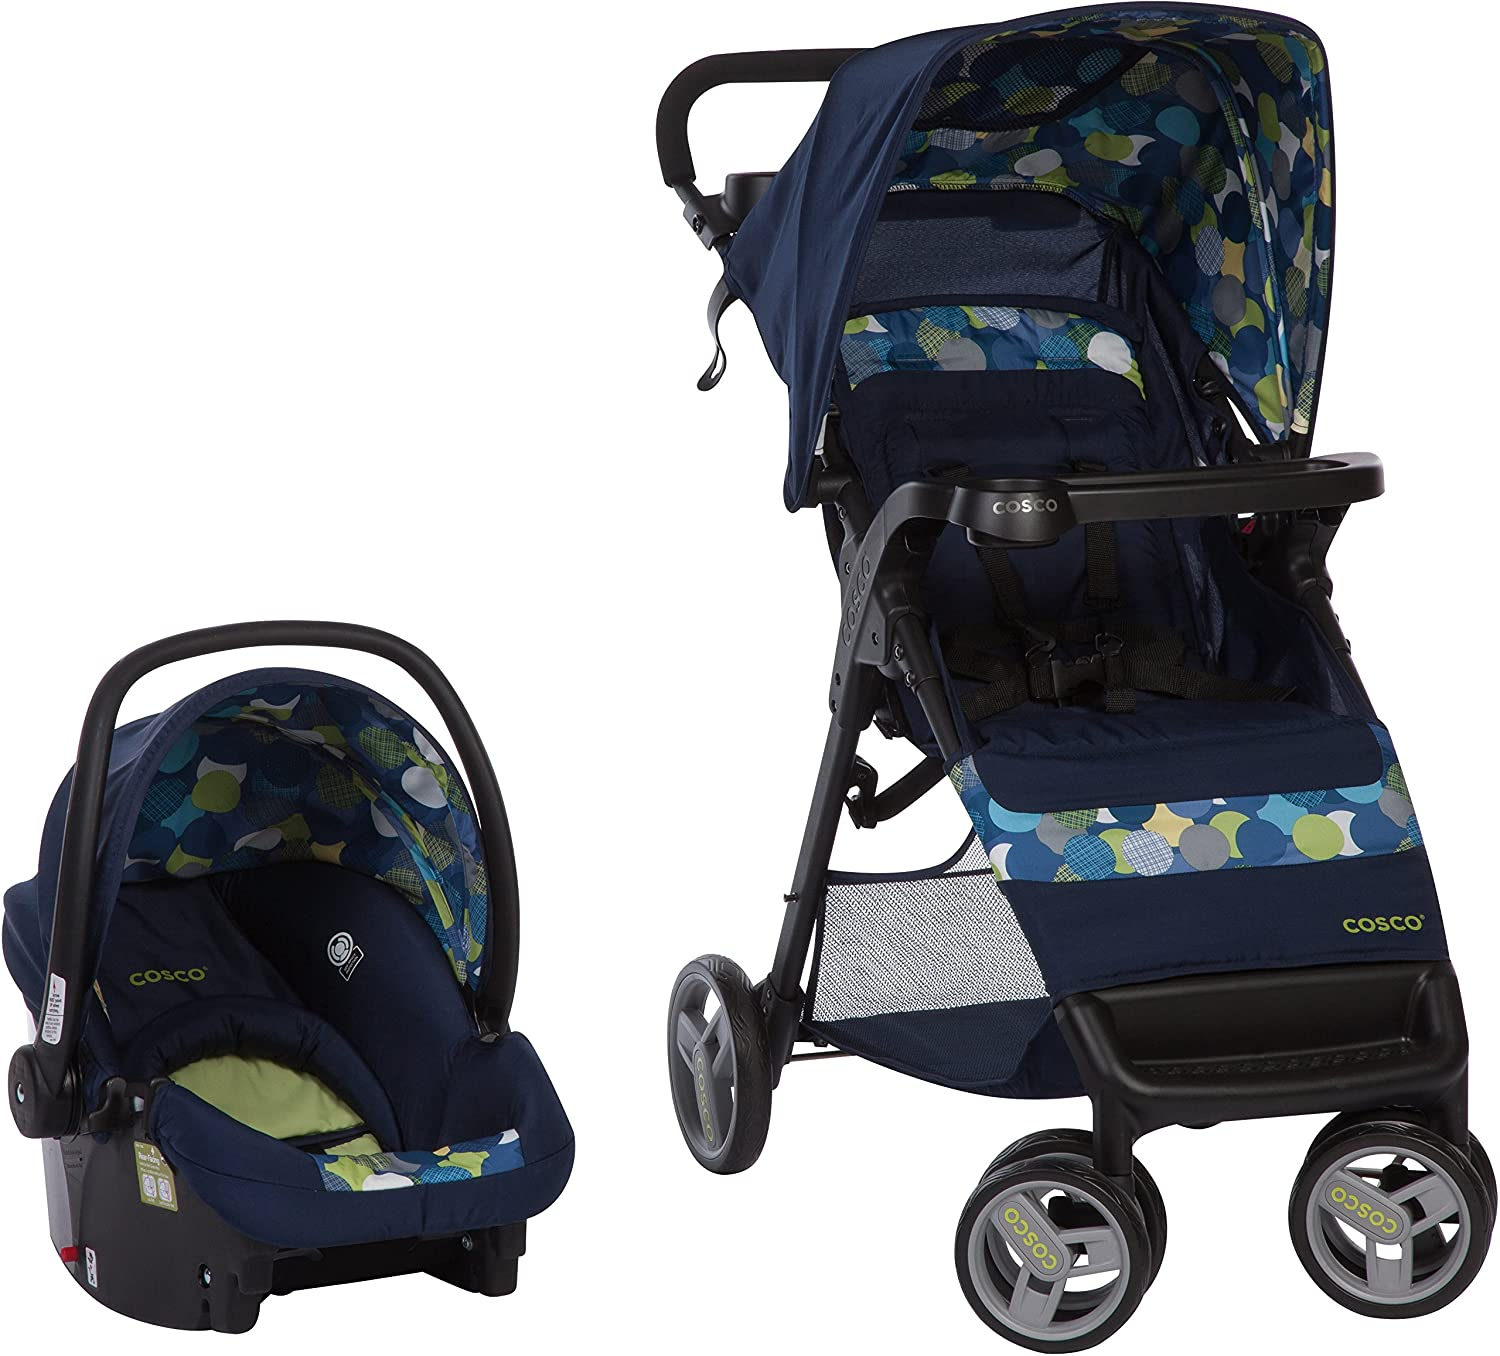 Cosco Simple Fold Travel System with Light and Comfy 22 Infant Car Seat, Comet